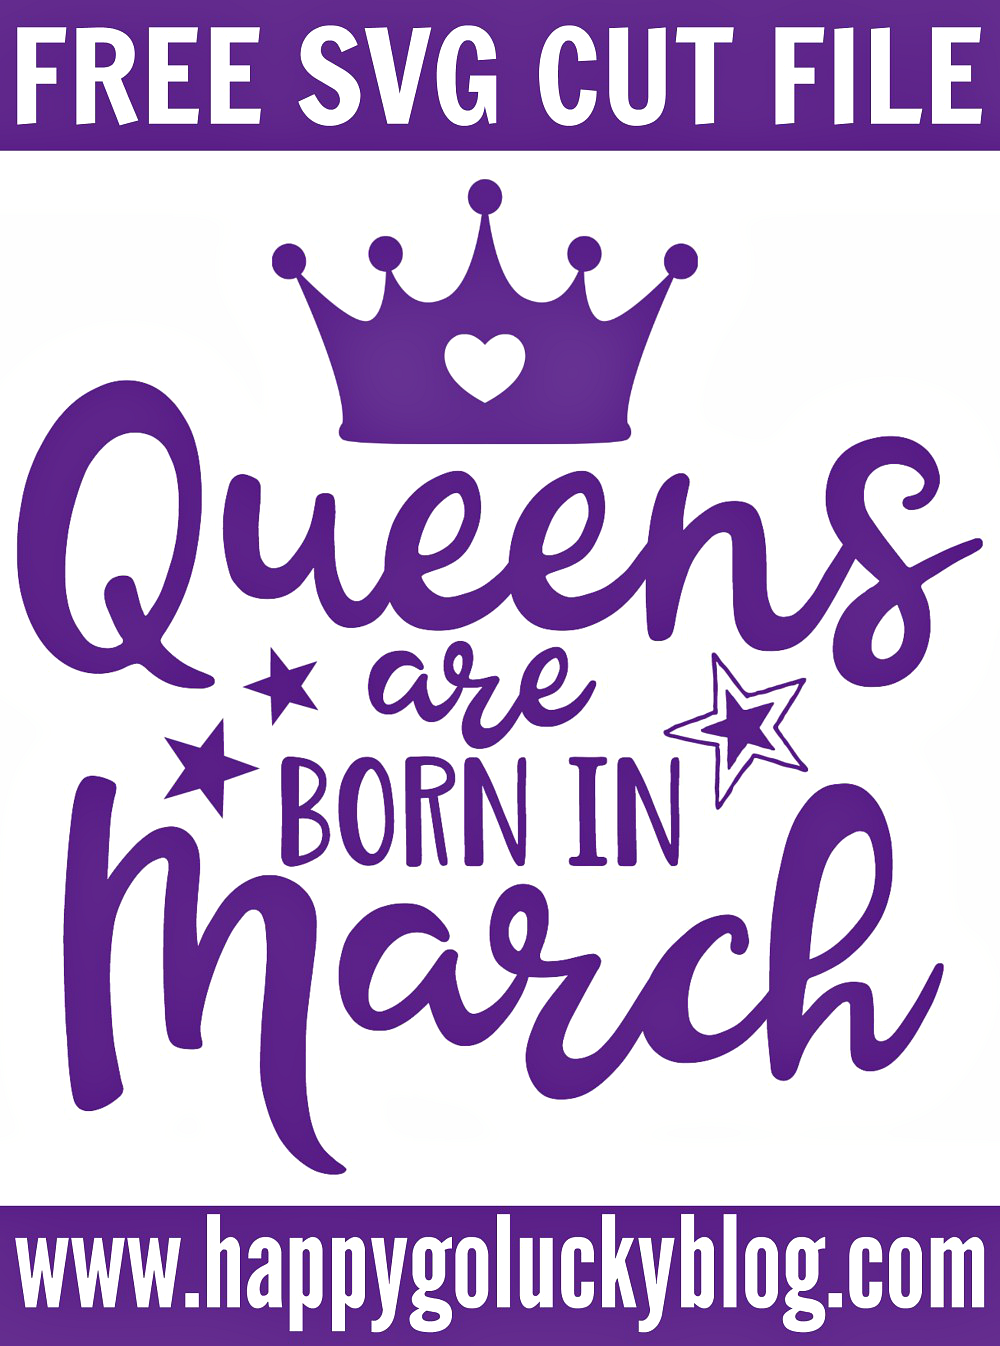 https://www.happygoluckyblog.com/wp-content/uploads/2018/03/Queens-are-born-in-March-SVG-Cut-File.png